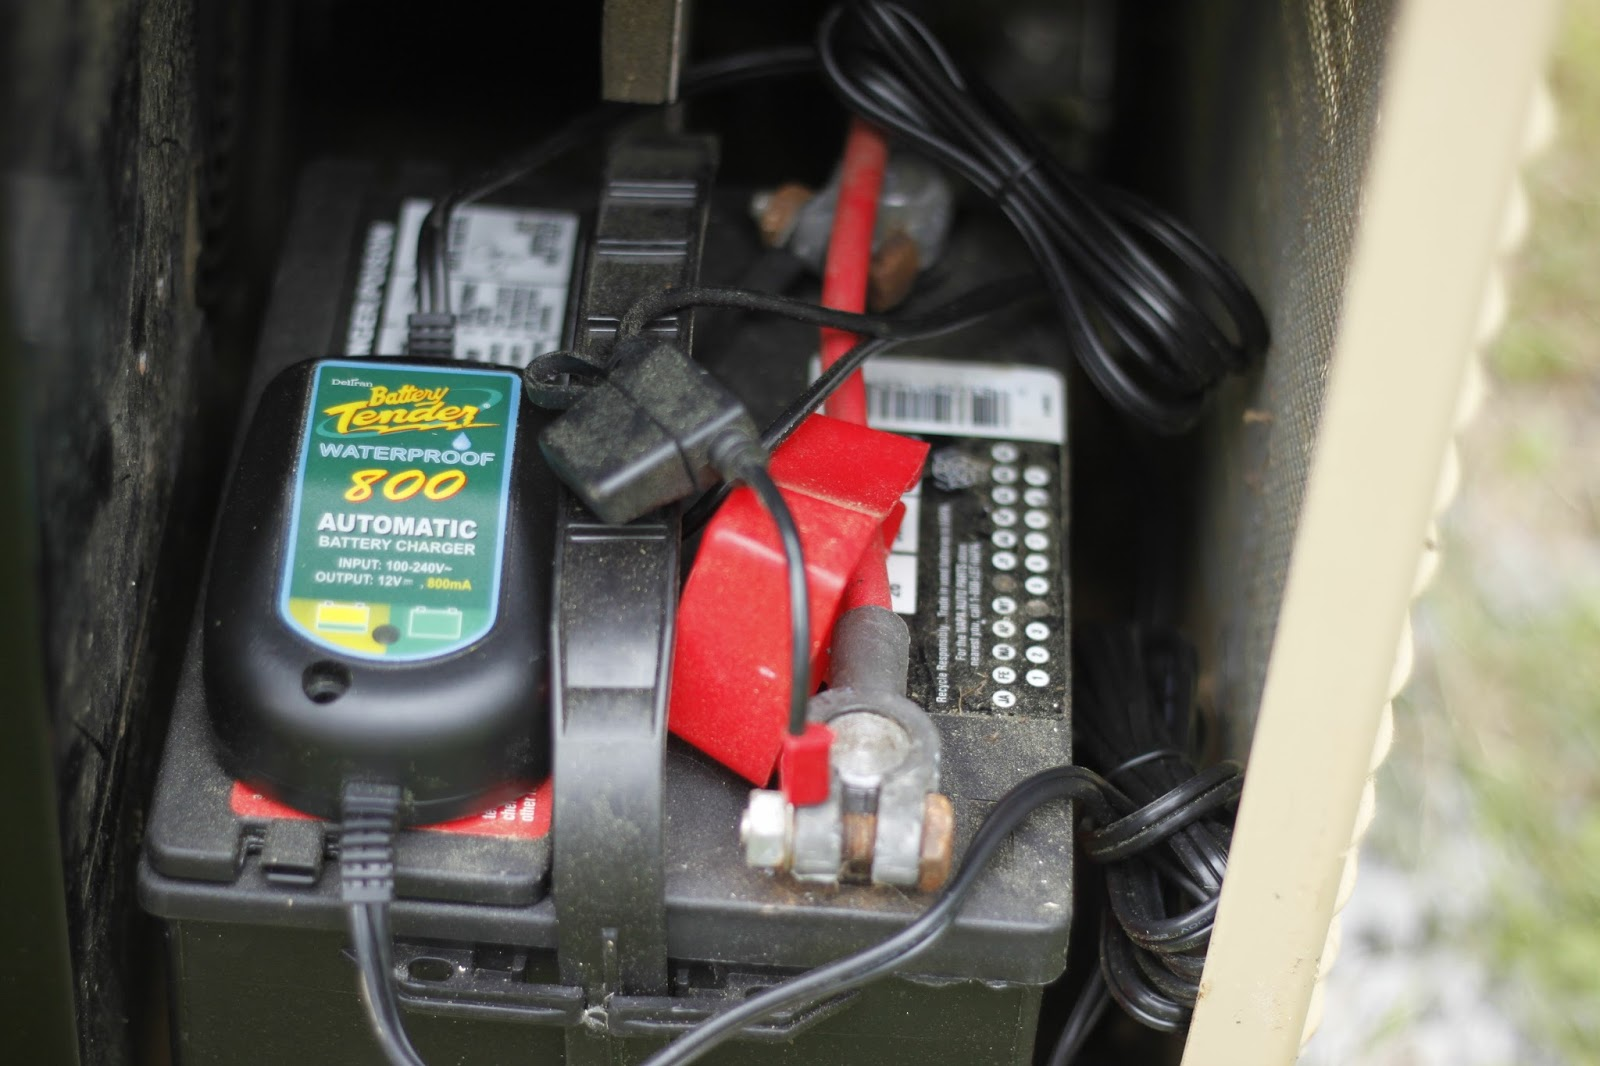 fet tricks substitue battery charger for generac generator the 240 vac input was available on screw terminals labeled n1 and n2 next i cut the 120 vac plug from the cord and crimped terminals on the wires